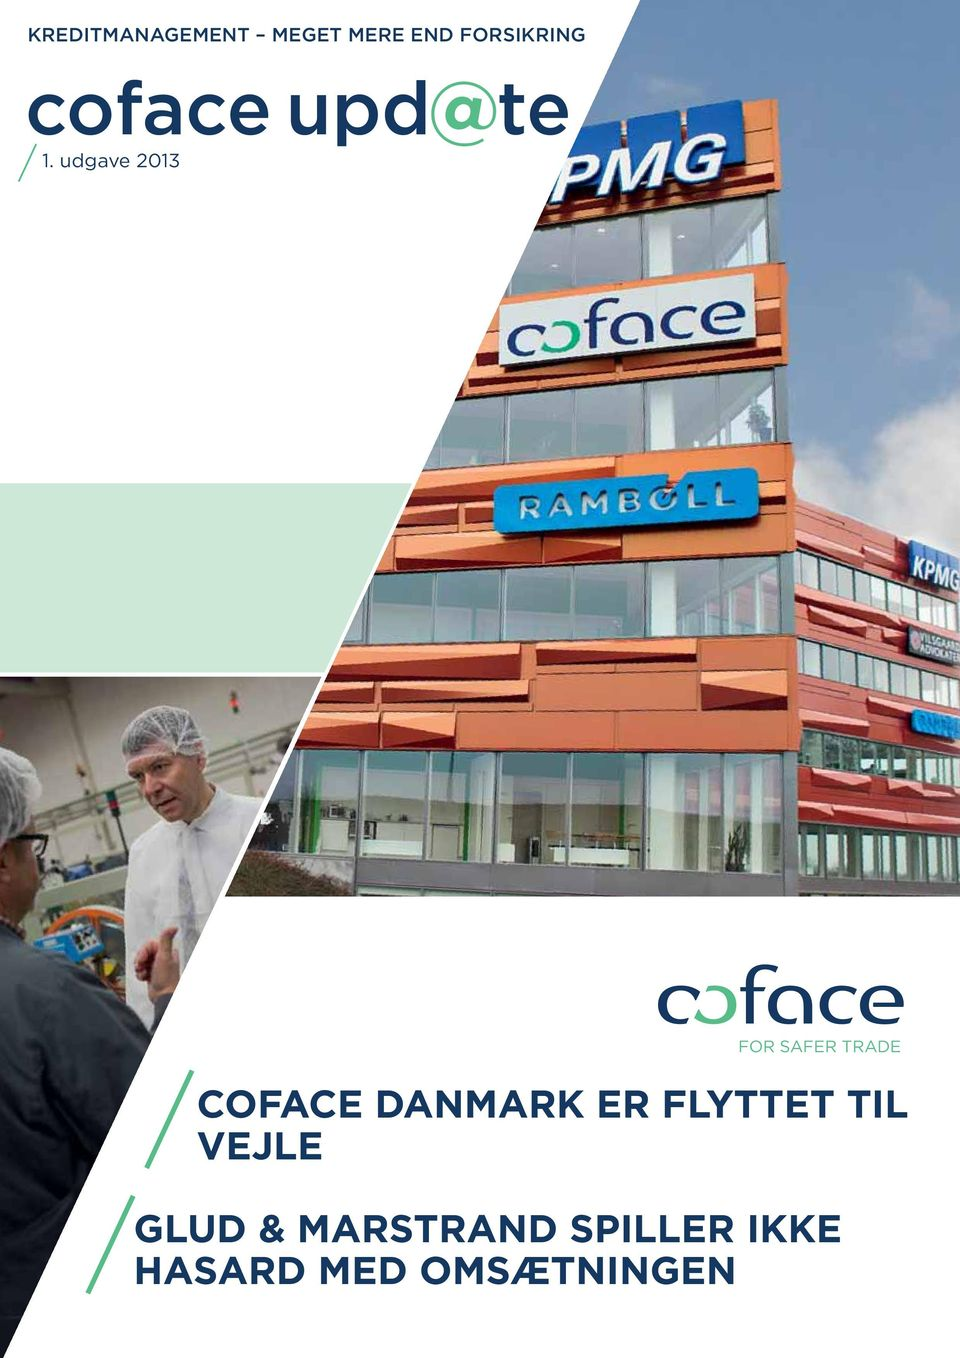 udgave 2013 FOR SAFER TRADE Coface Danmark